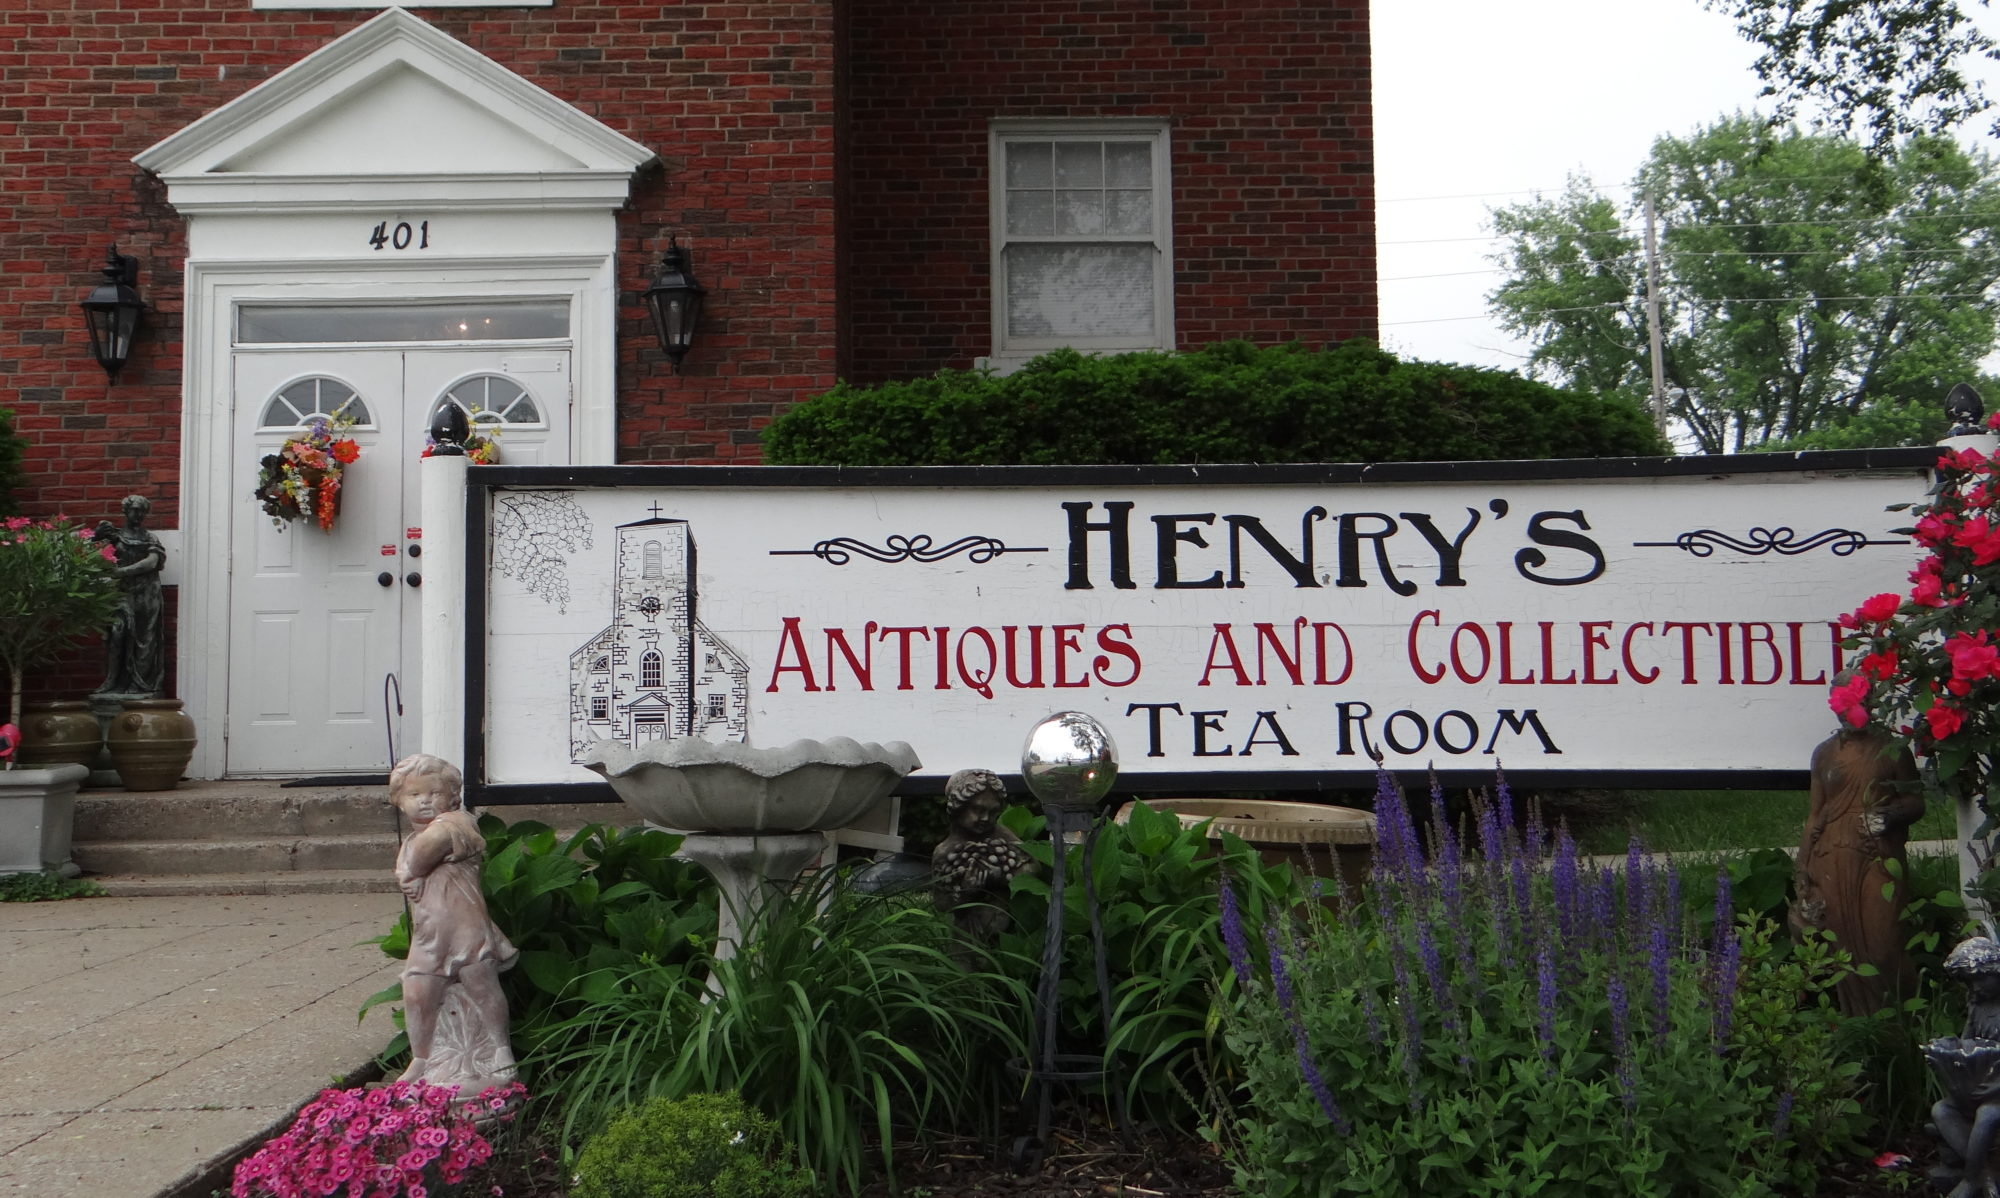 Henry's Antiques, Collectibles and Tearoom